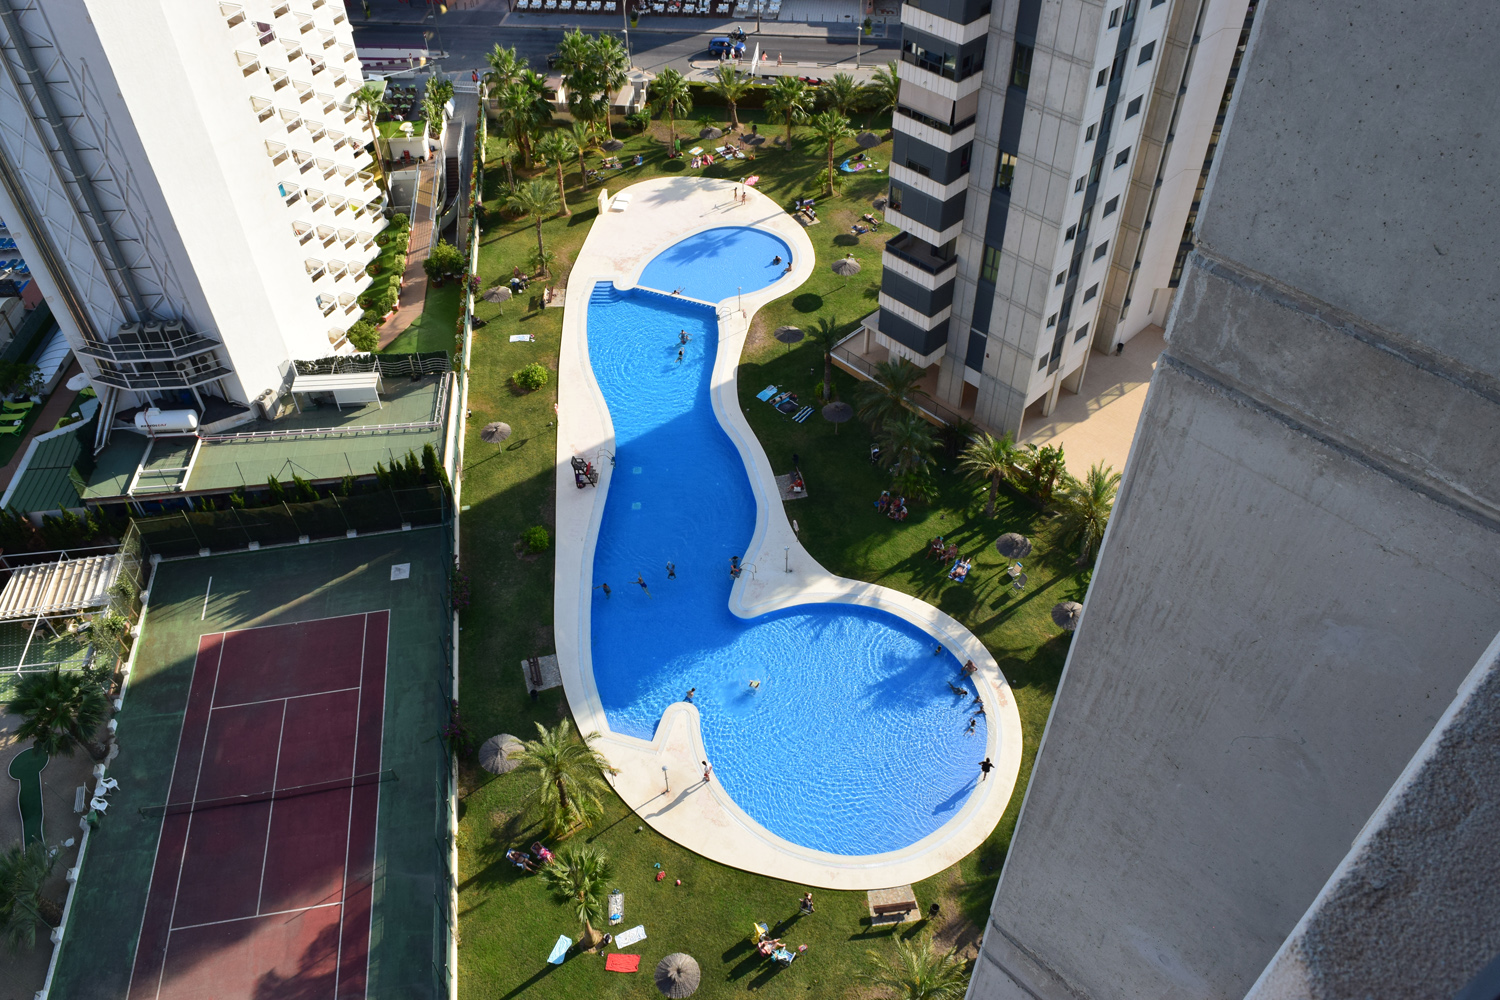 Gemelos 26 Apartment In Benidorm Buy A House In Calpe